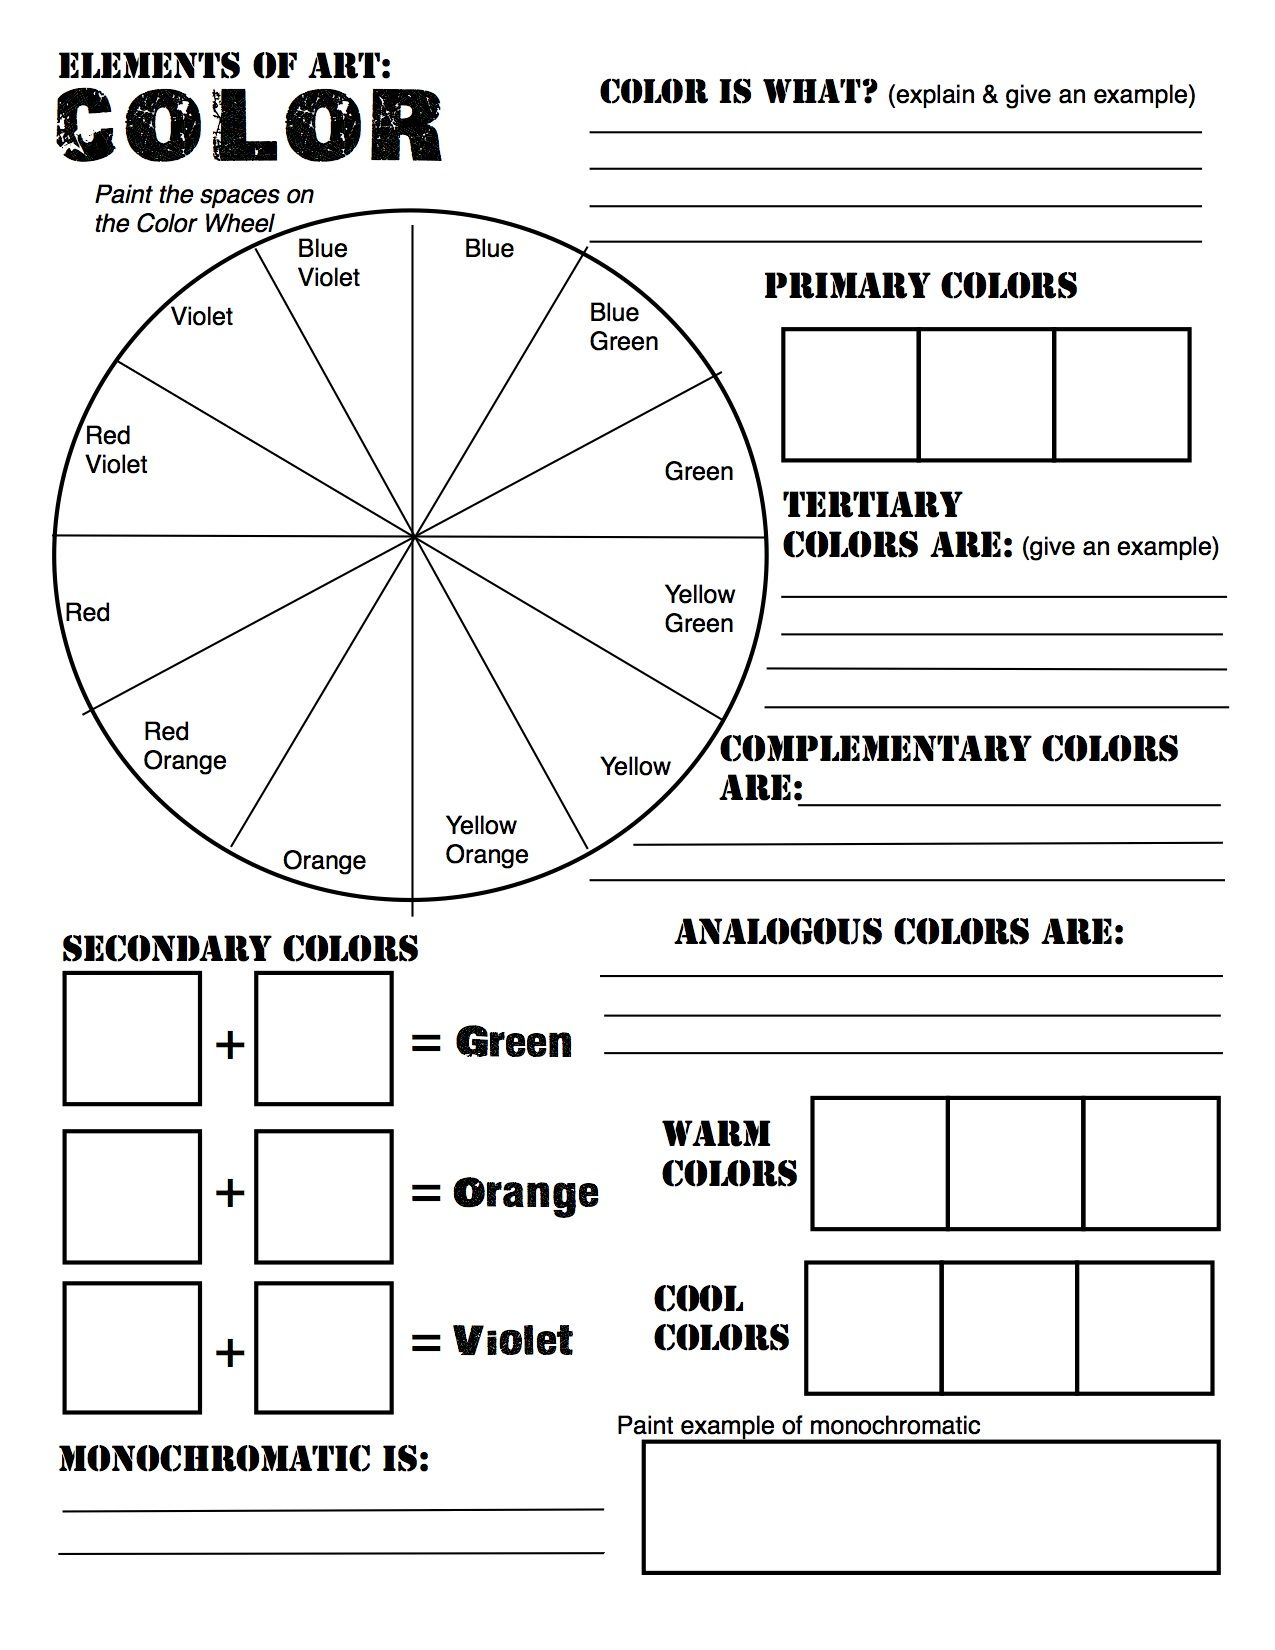 medium resolution of Color theory review sheet made for Studio in Art. Revised from  http://pinterest.com/pin/118782508893259117/   Art worksheets